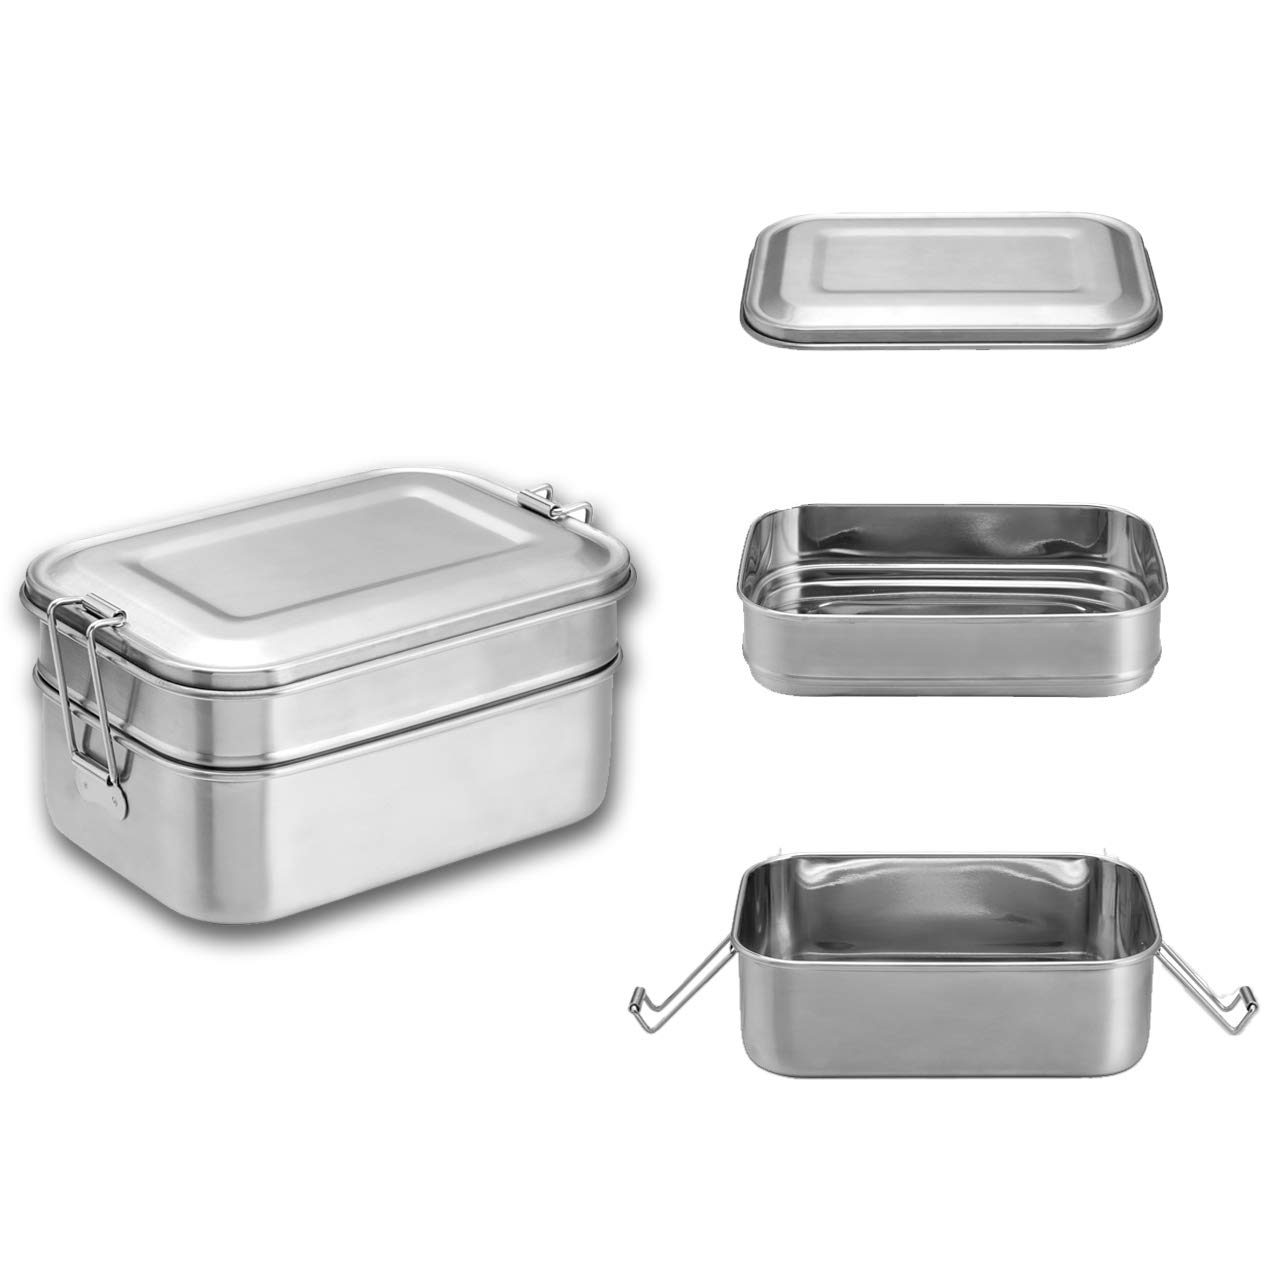 Bento Lunch Box for Kids&Adults, WarmHut Stainless Steel Food Containers, Metal Food Storage Lunch box, Eco Friendly, BPA-Free, for School Office Camping Meal Prep(45OZ/1340ML)